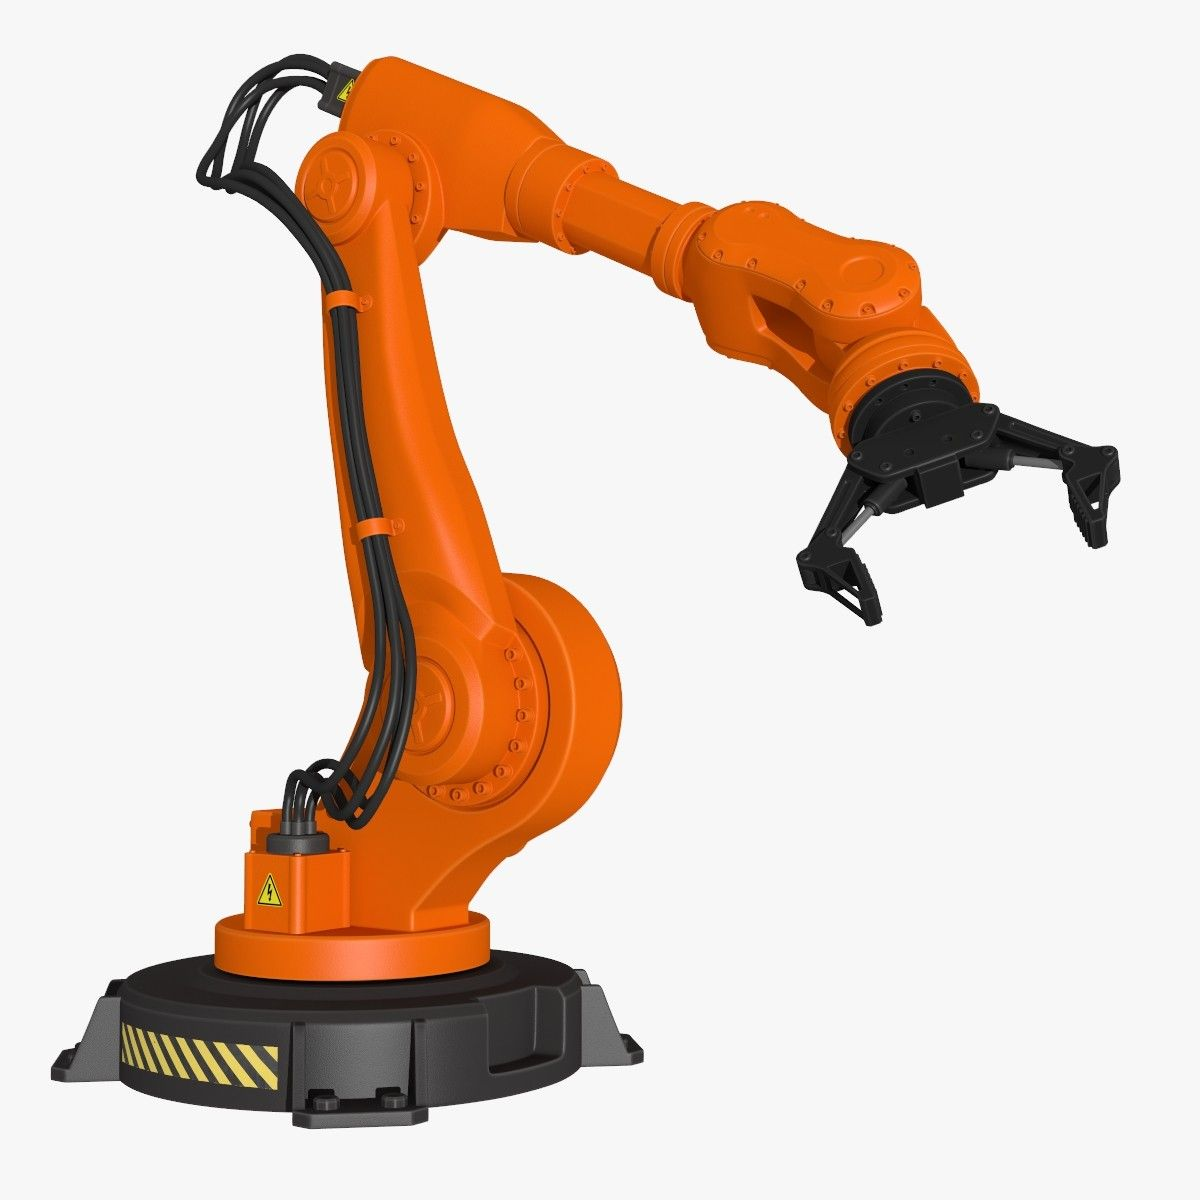 Fbx Industrial Robot Modeled Armadura Corporal